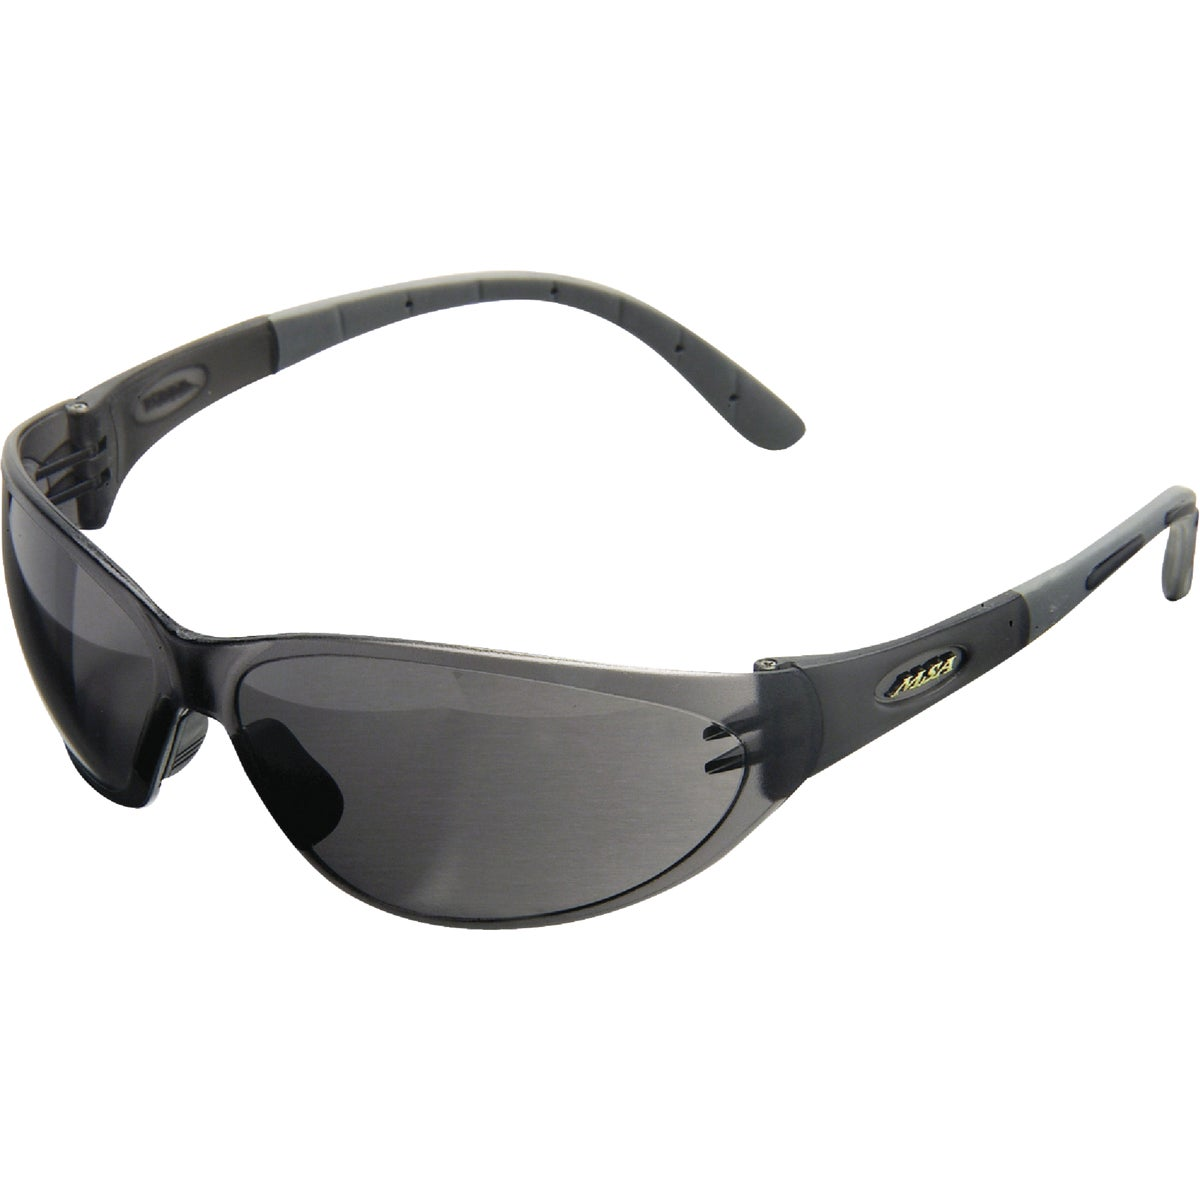 TINTED SAFETY GLASSES - 10041749 by Msa Safety